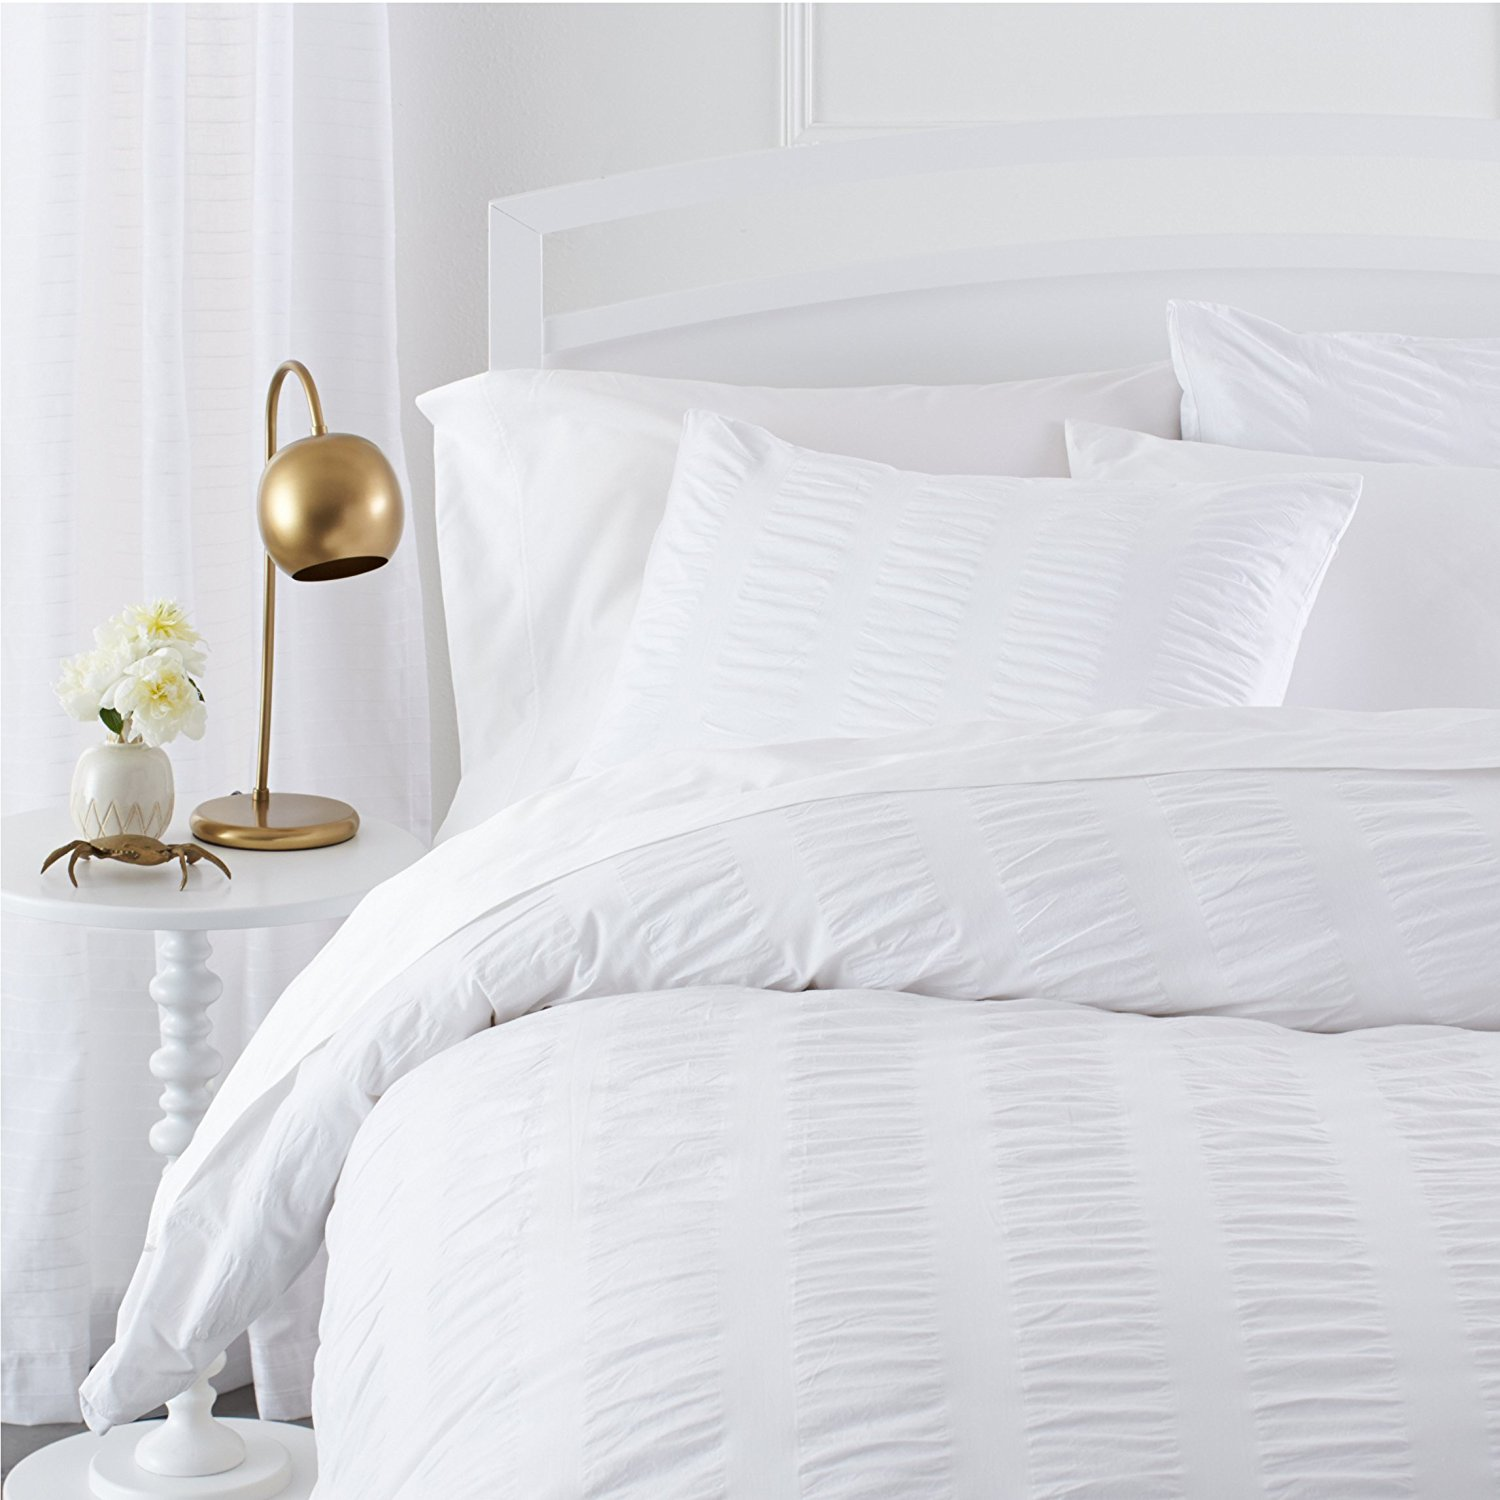 Target Floral Bedding | White Duvet Cover Queen | Plain White Duvet Cover Queen